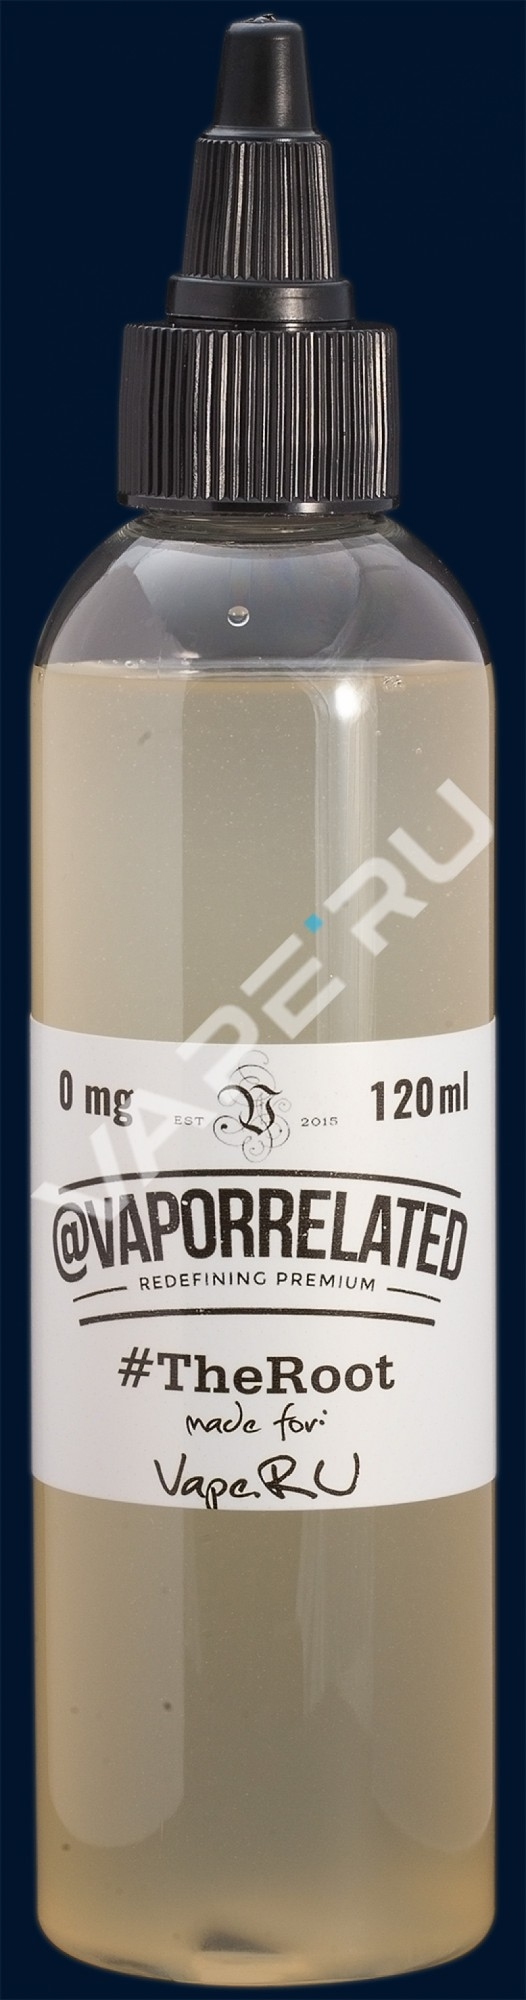 Vapor Related, TheRoot, 120ml